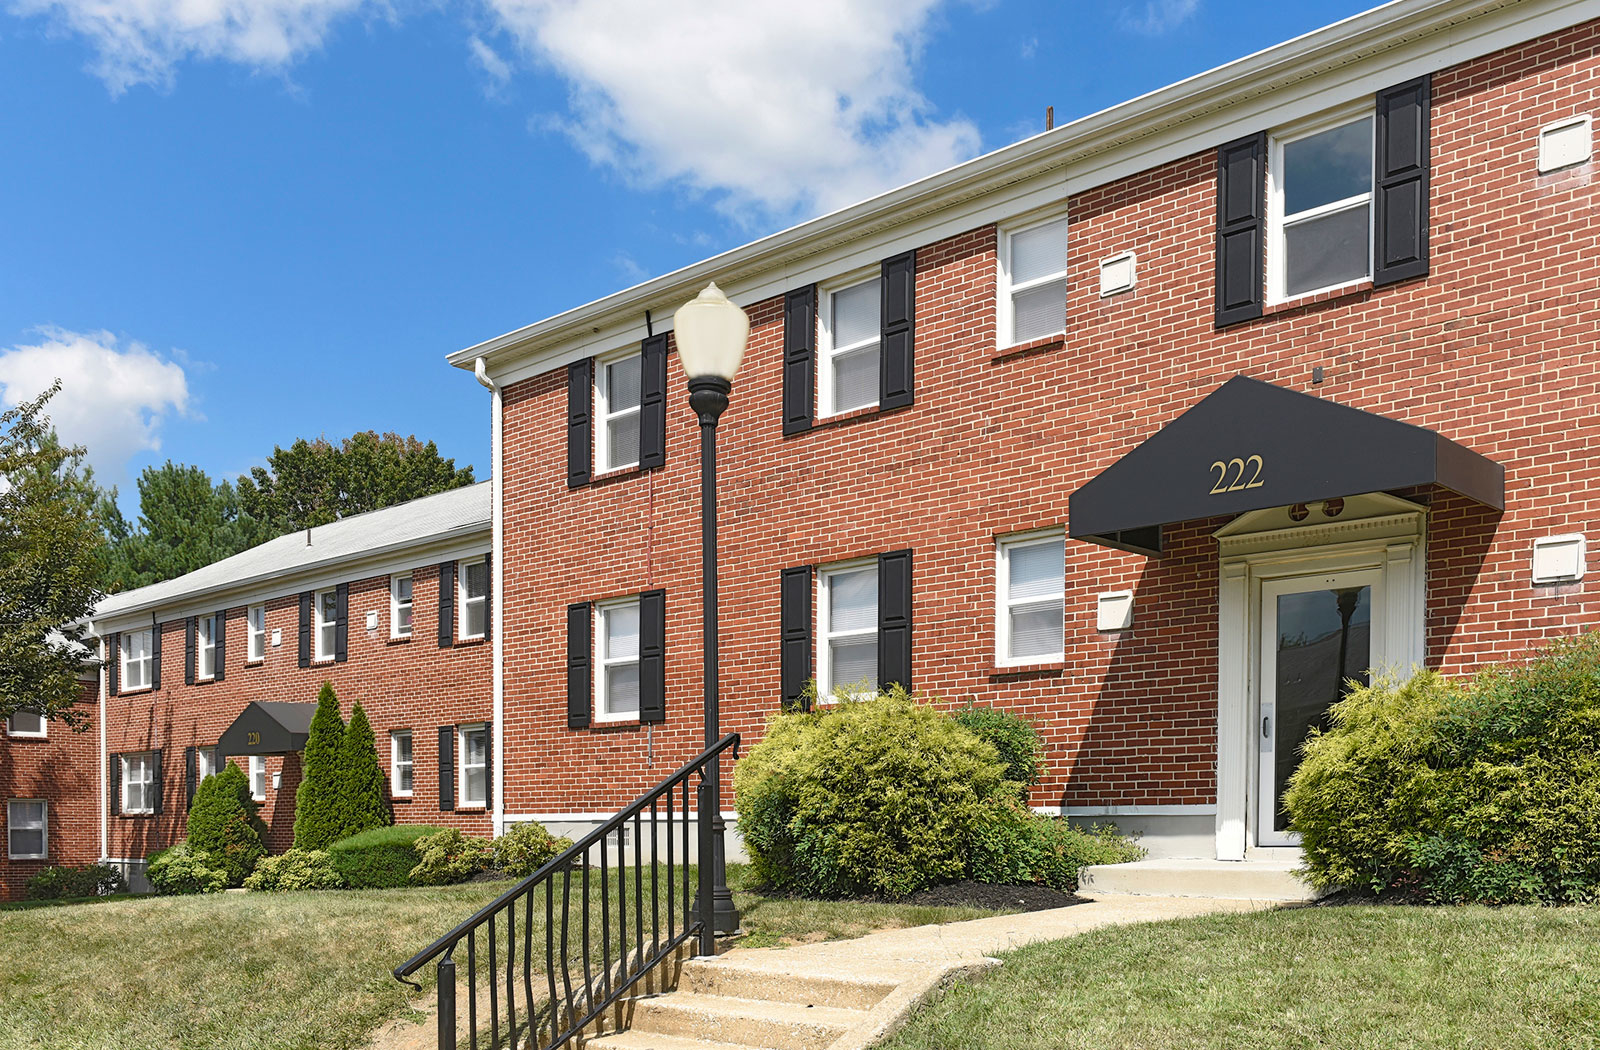 Studio Towson Apartments for Rent | Towson, MD